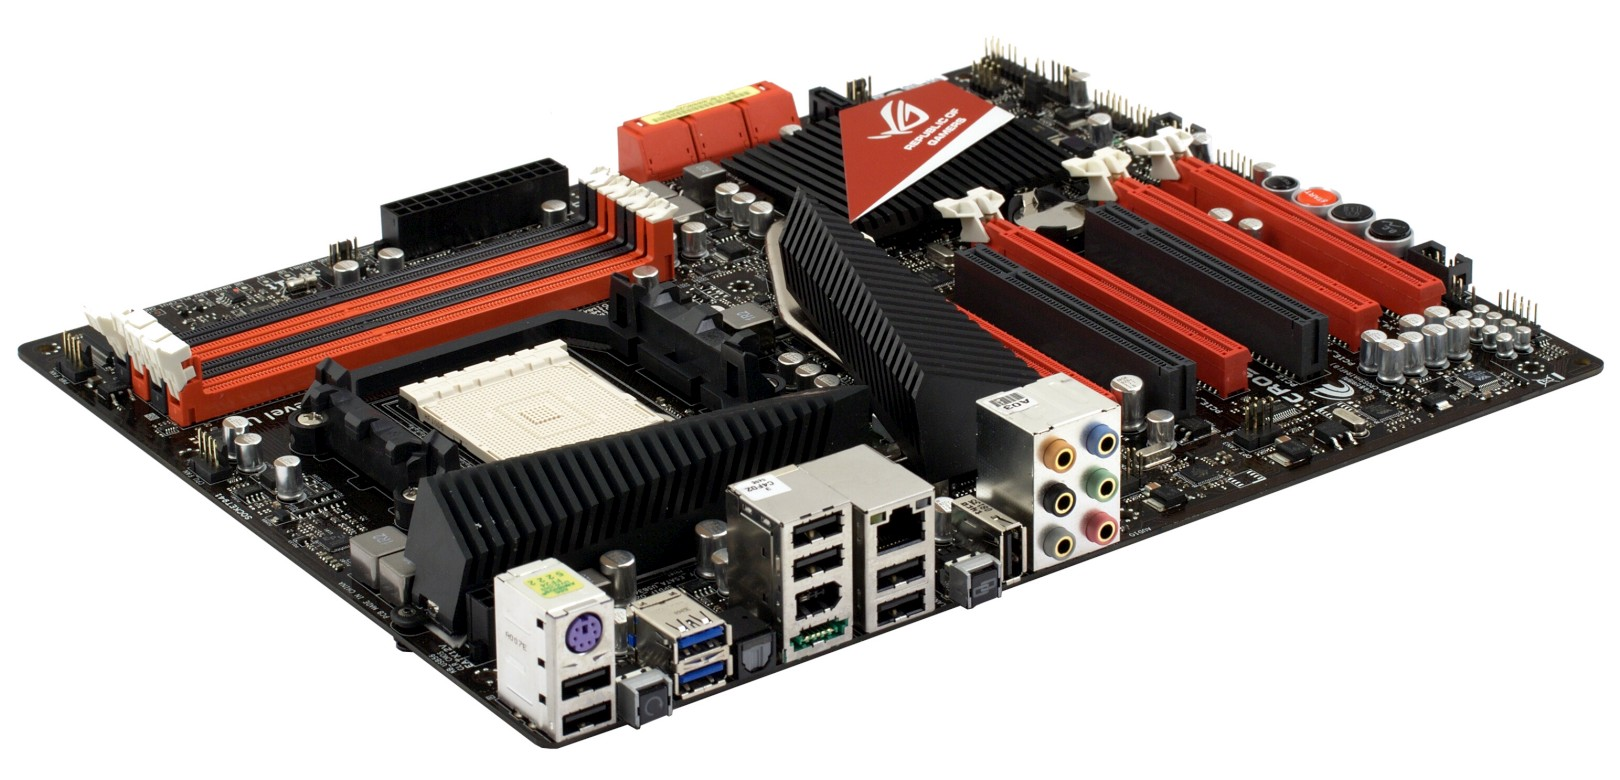 iXBT Labs - ASUS Crosshair IV Formula Motherboard - Page 1